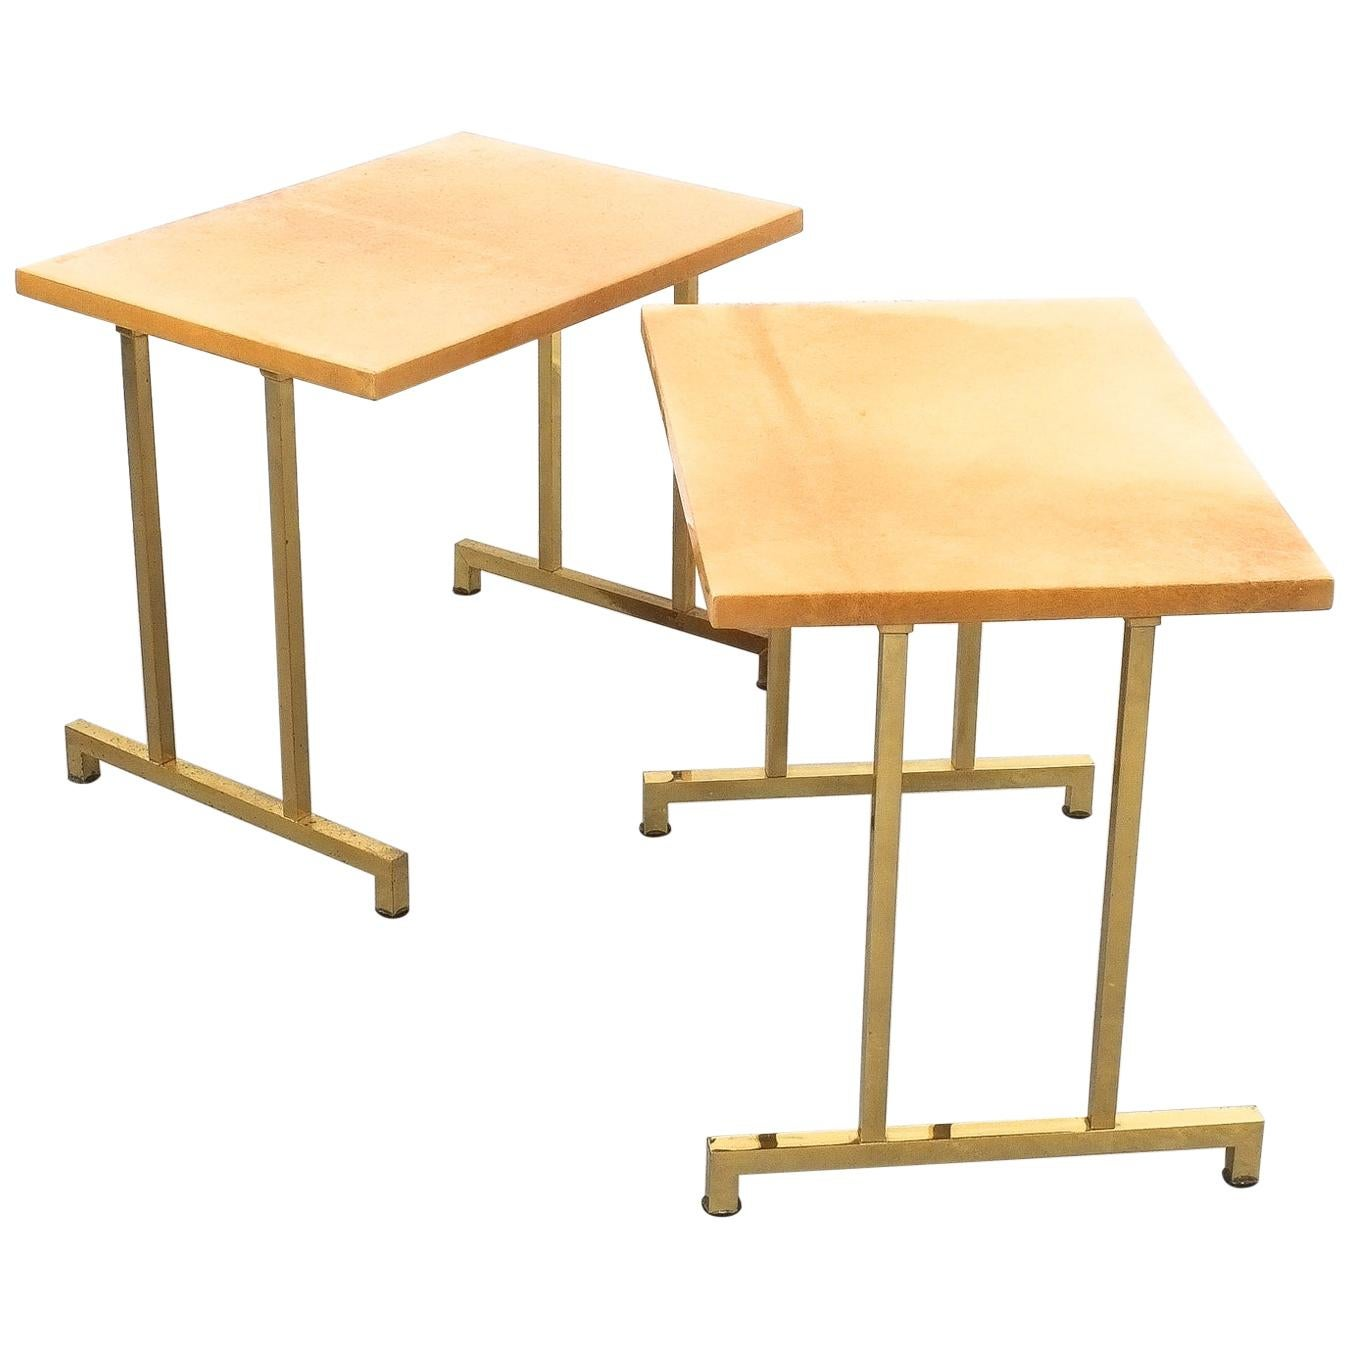 Pair of Tan Parchment Brass Coffee or Side Tables Aldo Tura, Italy, 1970